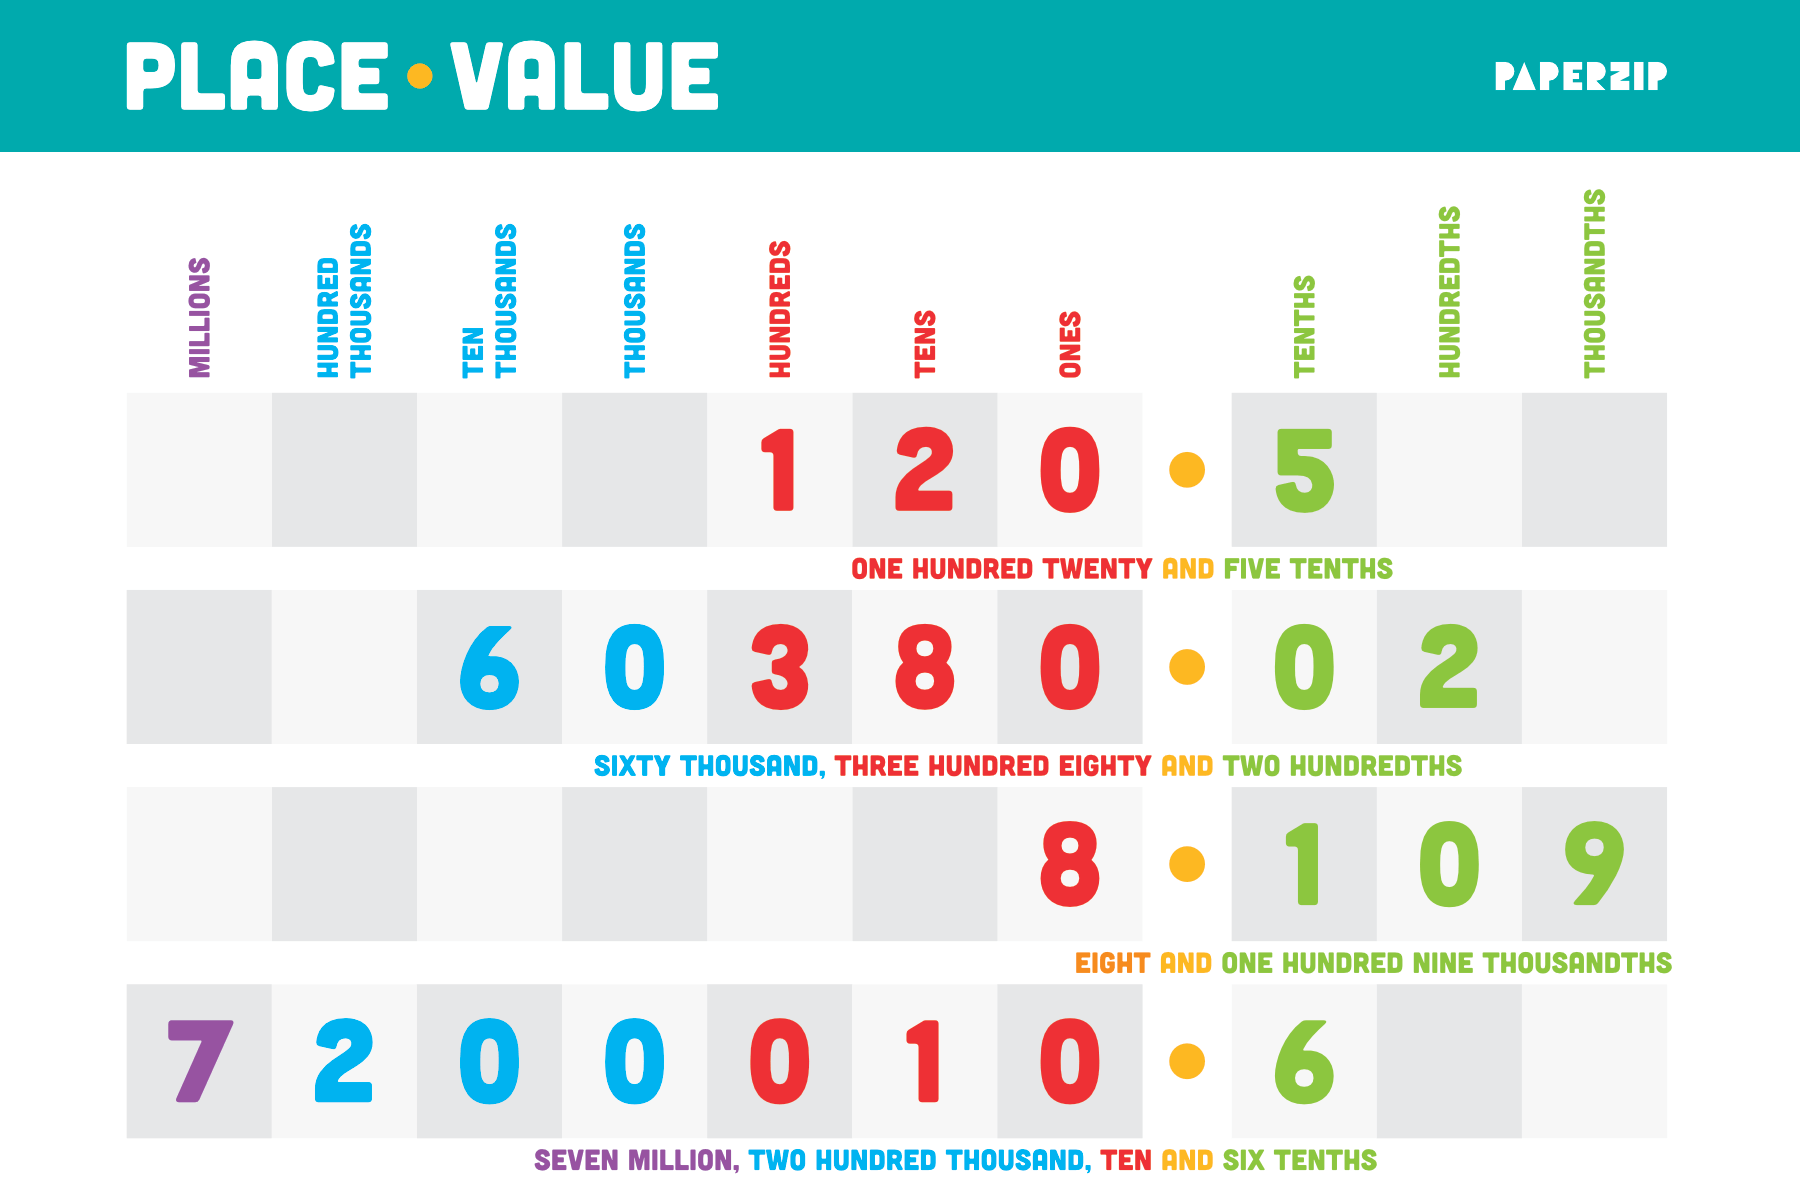 Place Value Poster And Numbers Paperzip